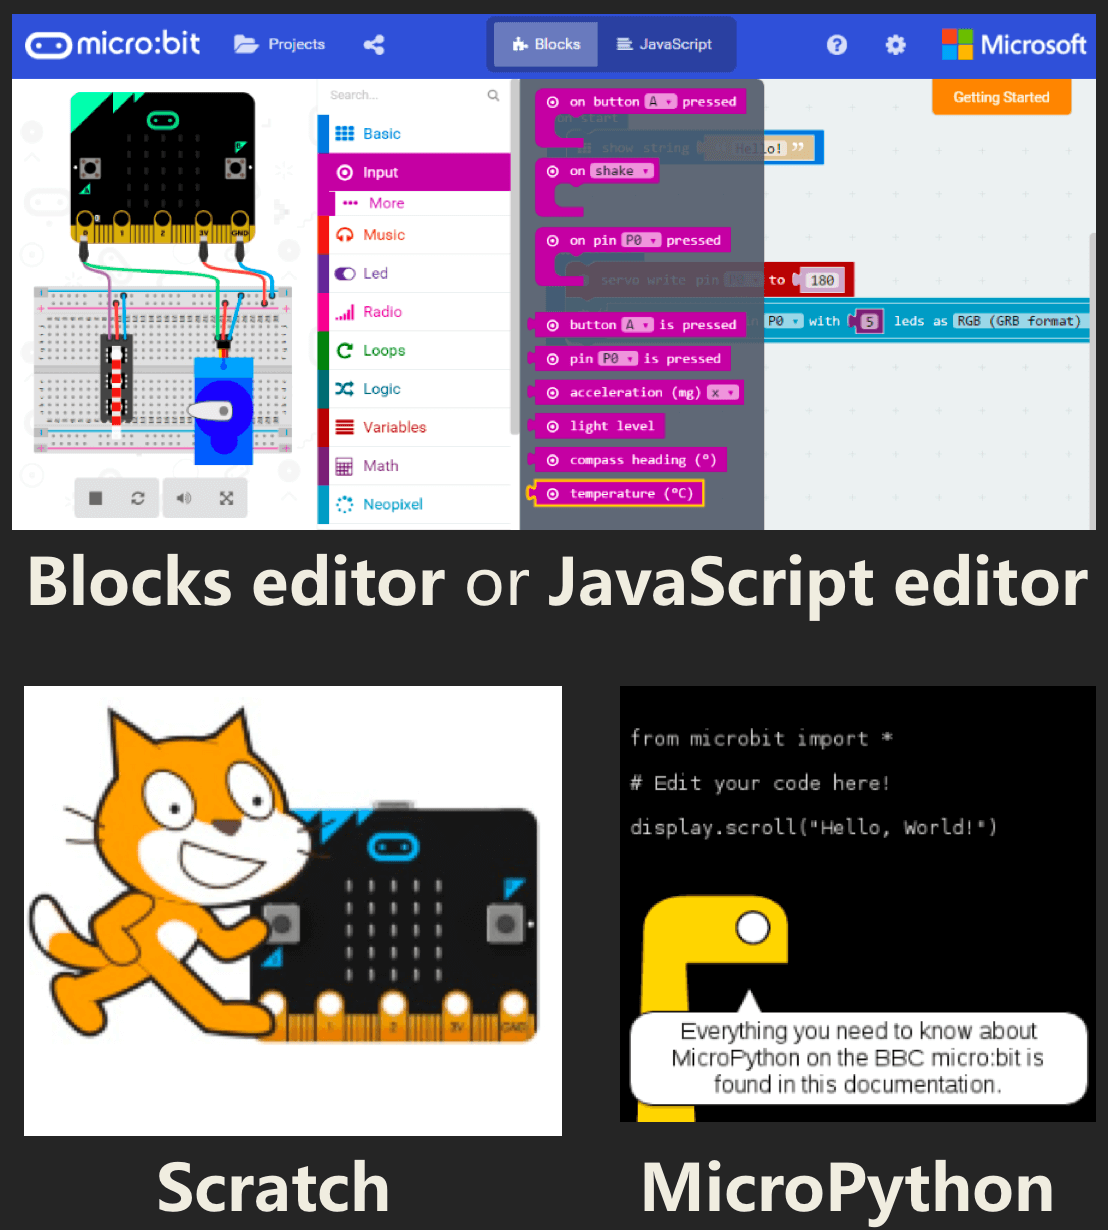 Program Max:Bot with Scratch, MakeCode block editor, Python or JavaScript